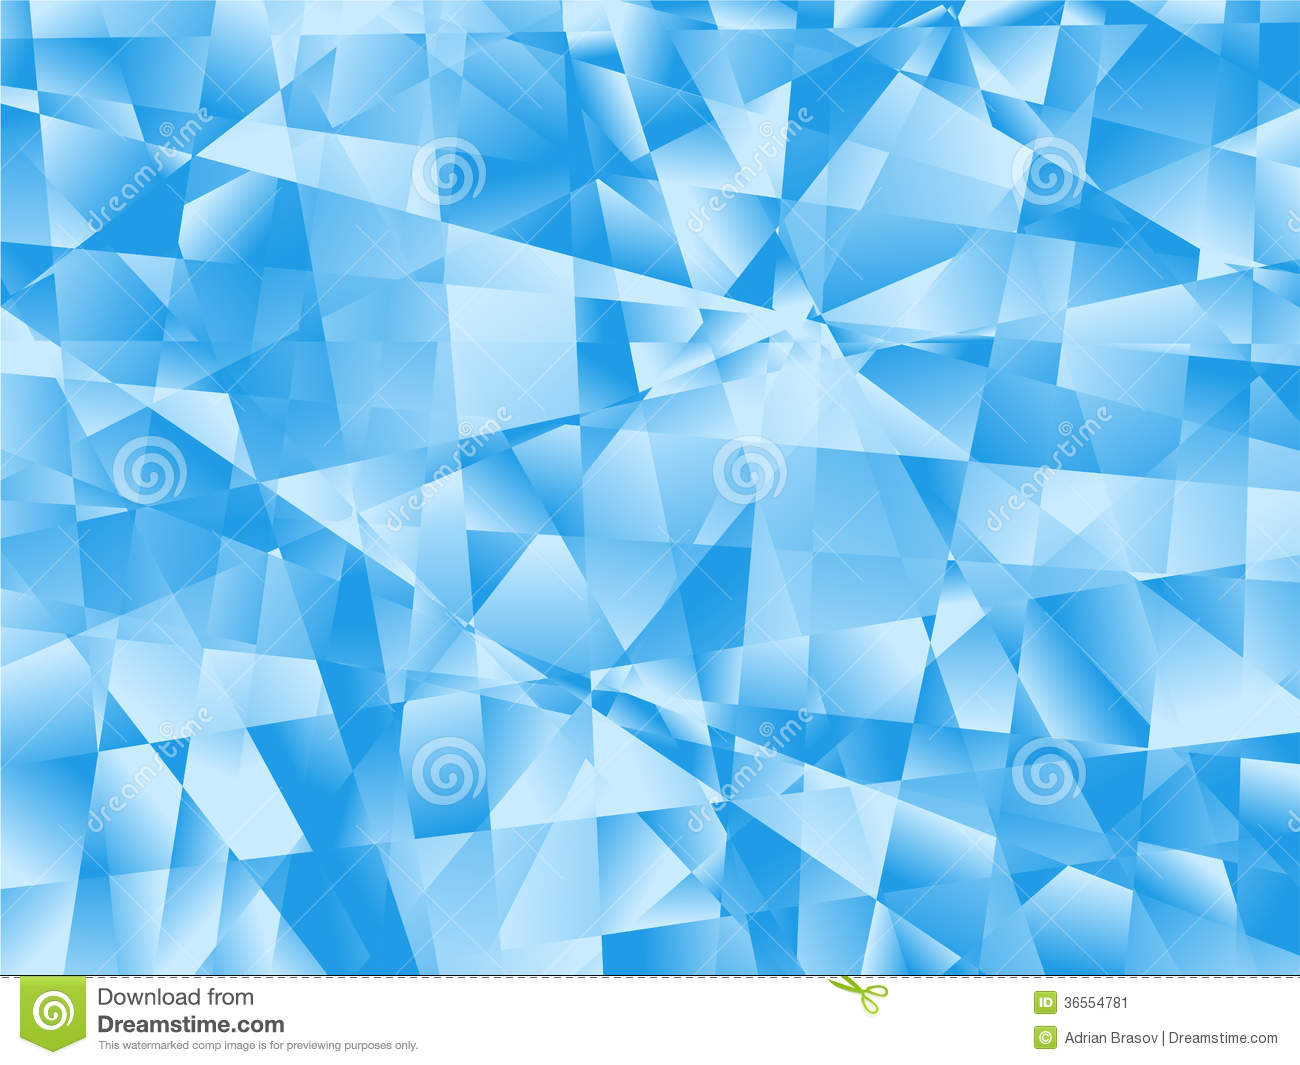 Blue White Background Stock Image - Image: 36554781